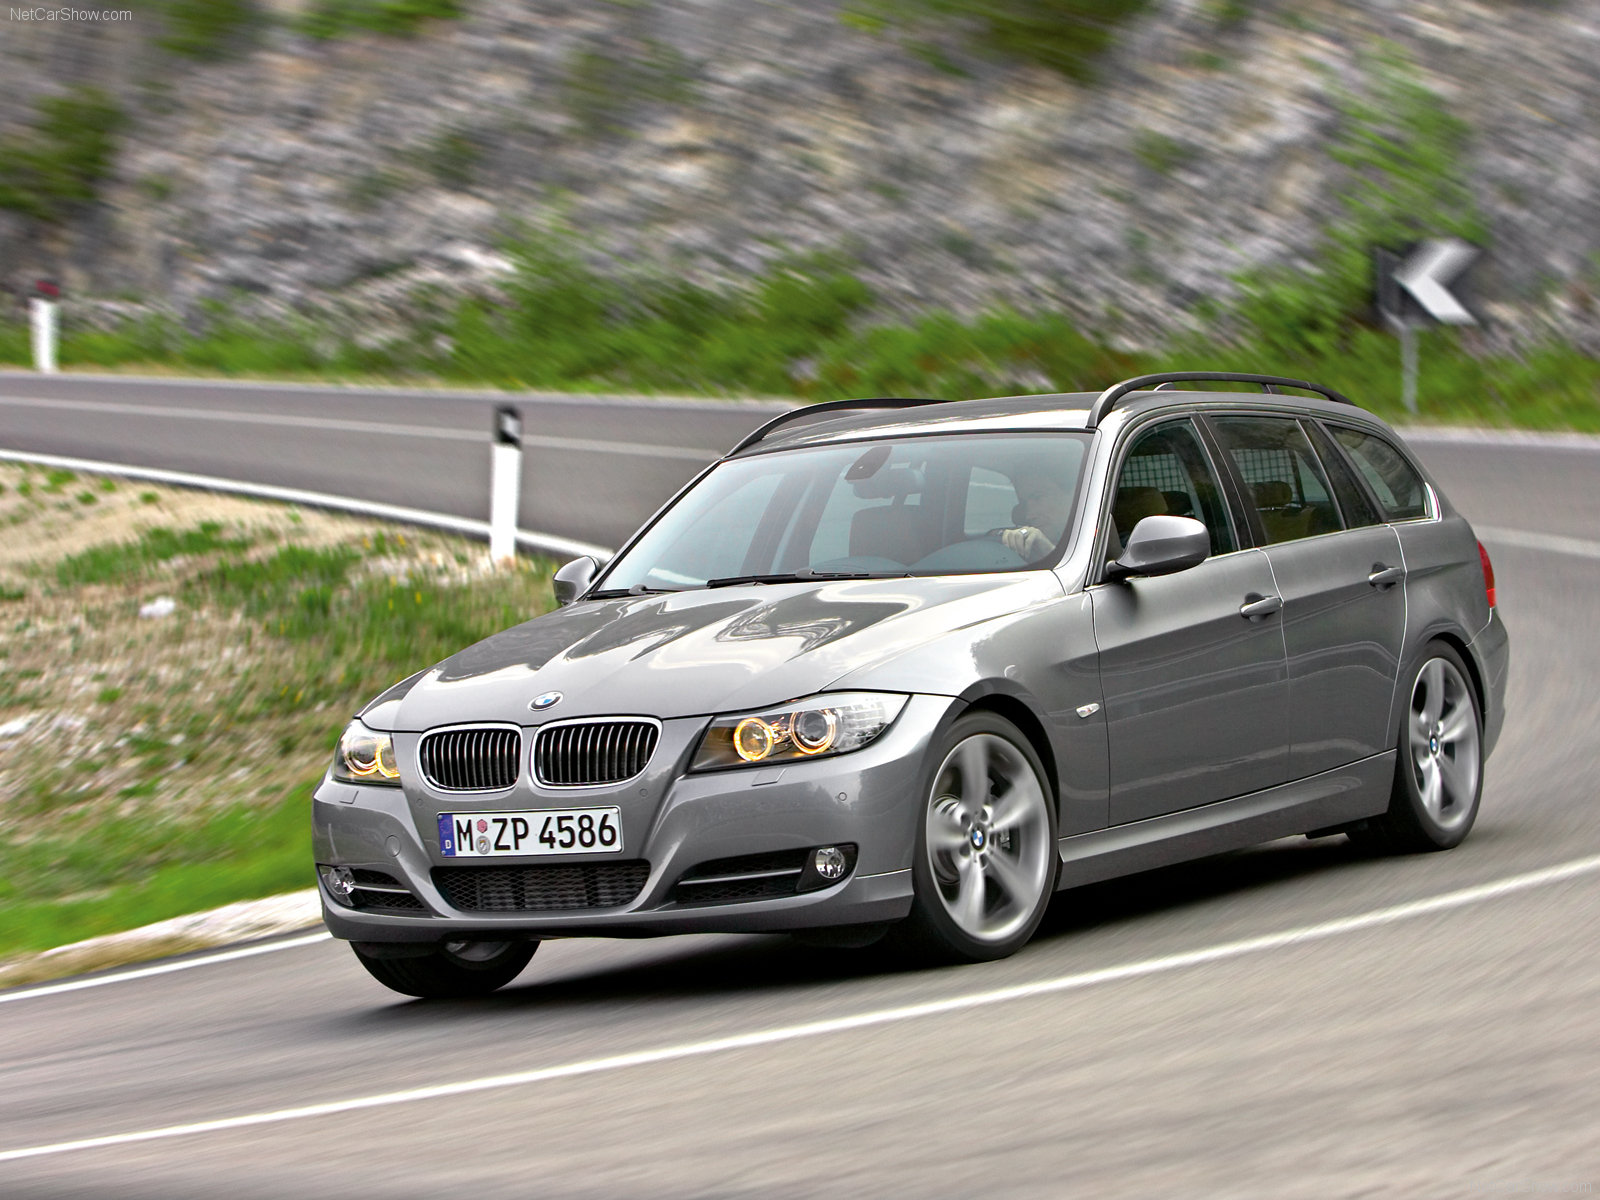 Bmw 3 series e91 touring picture 56570 bmw photo gallery carsbase com